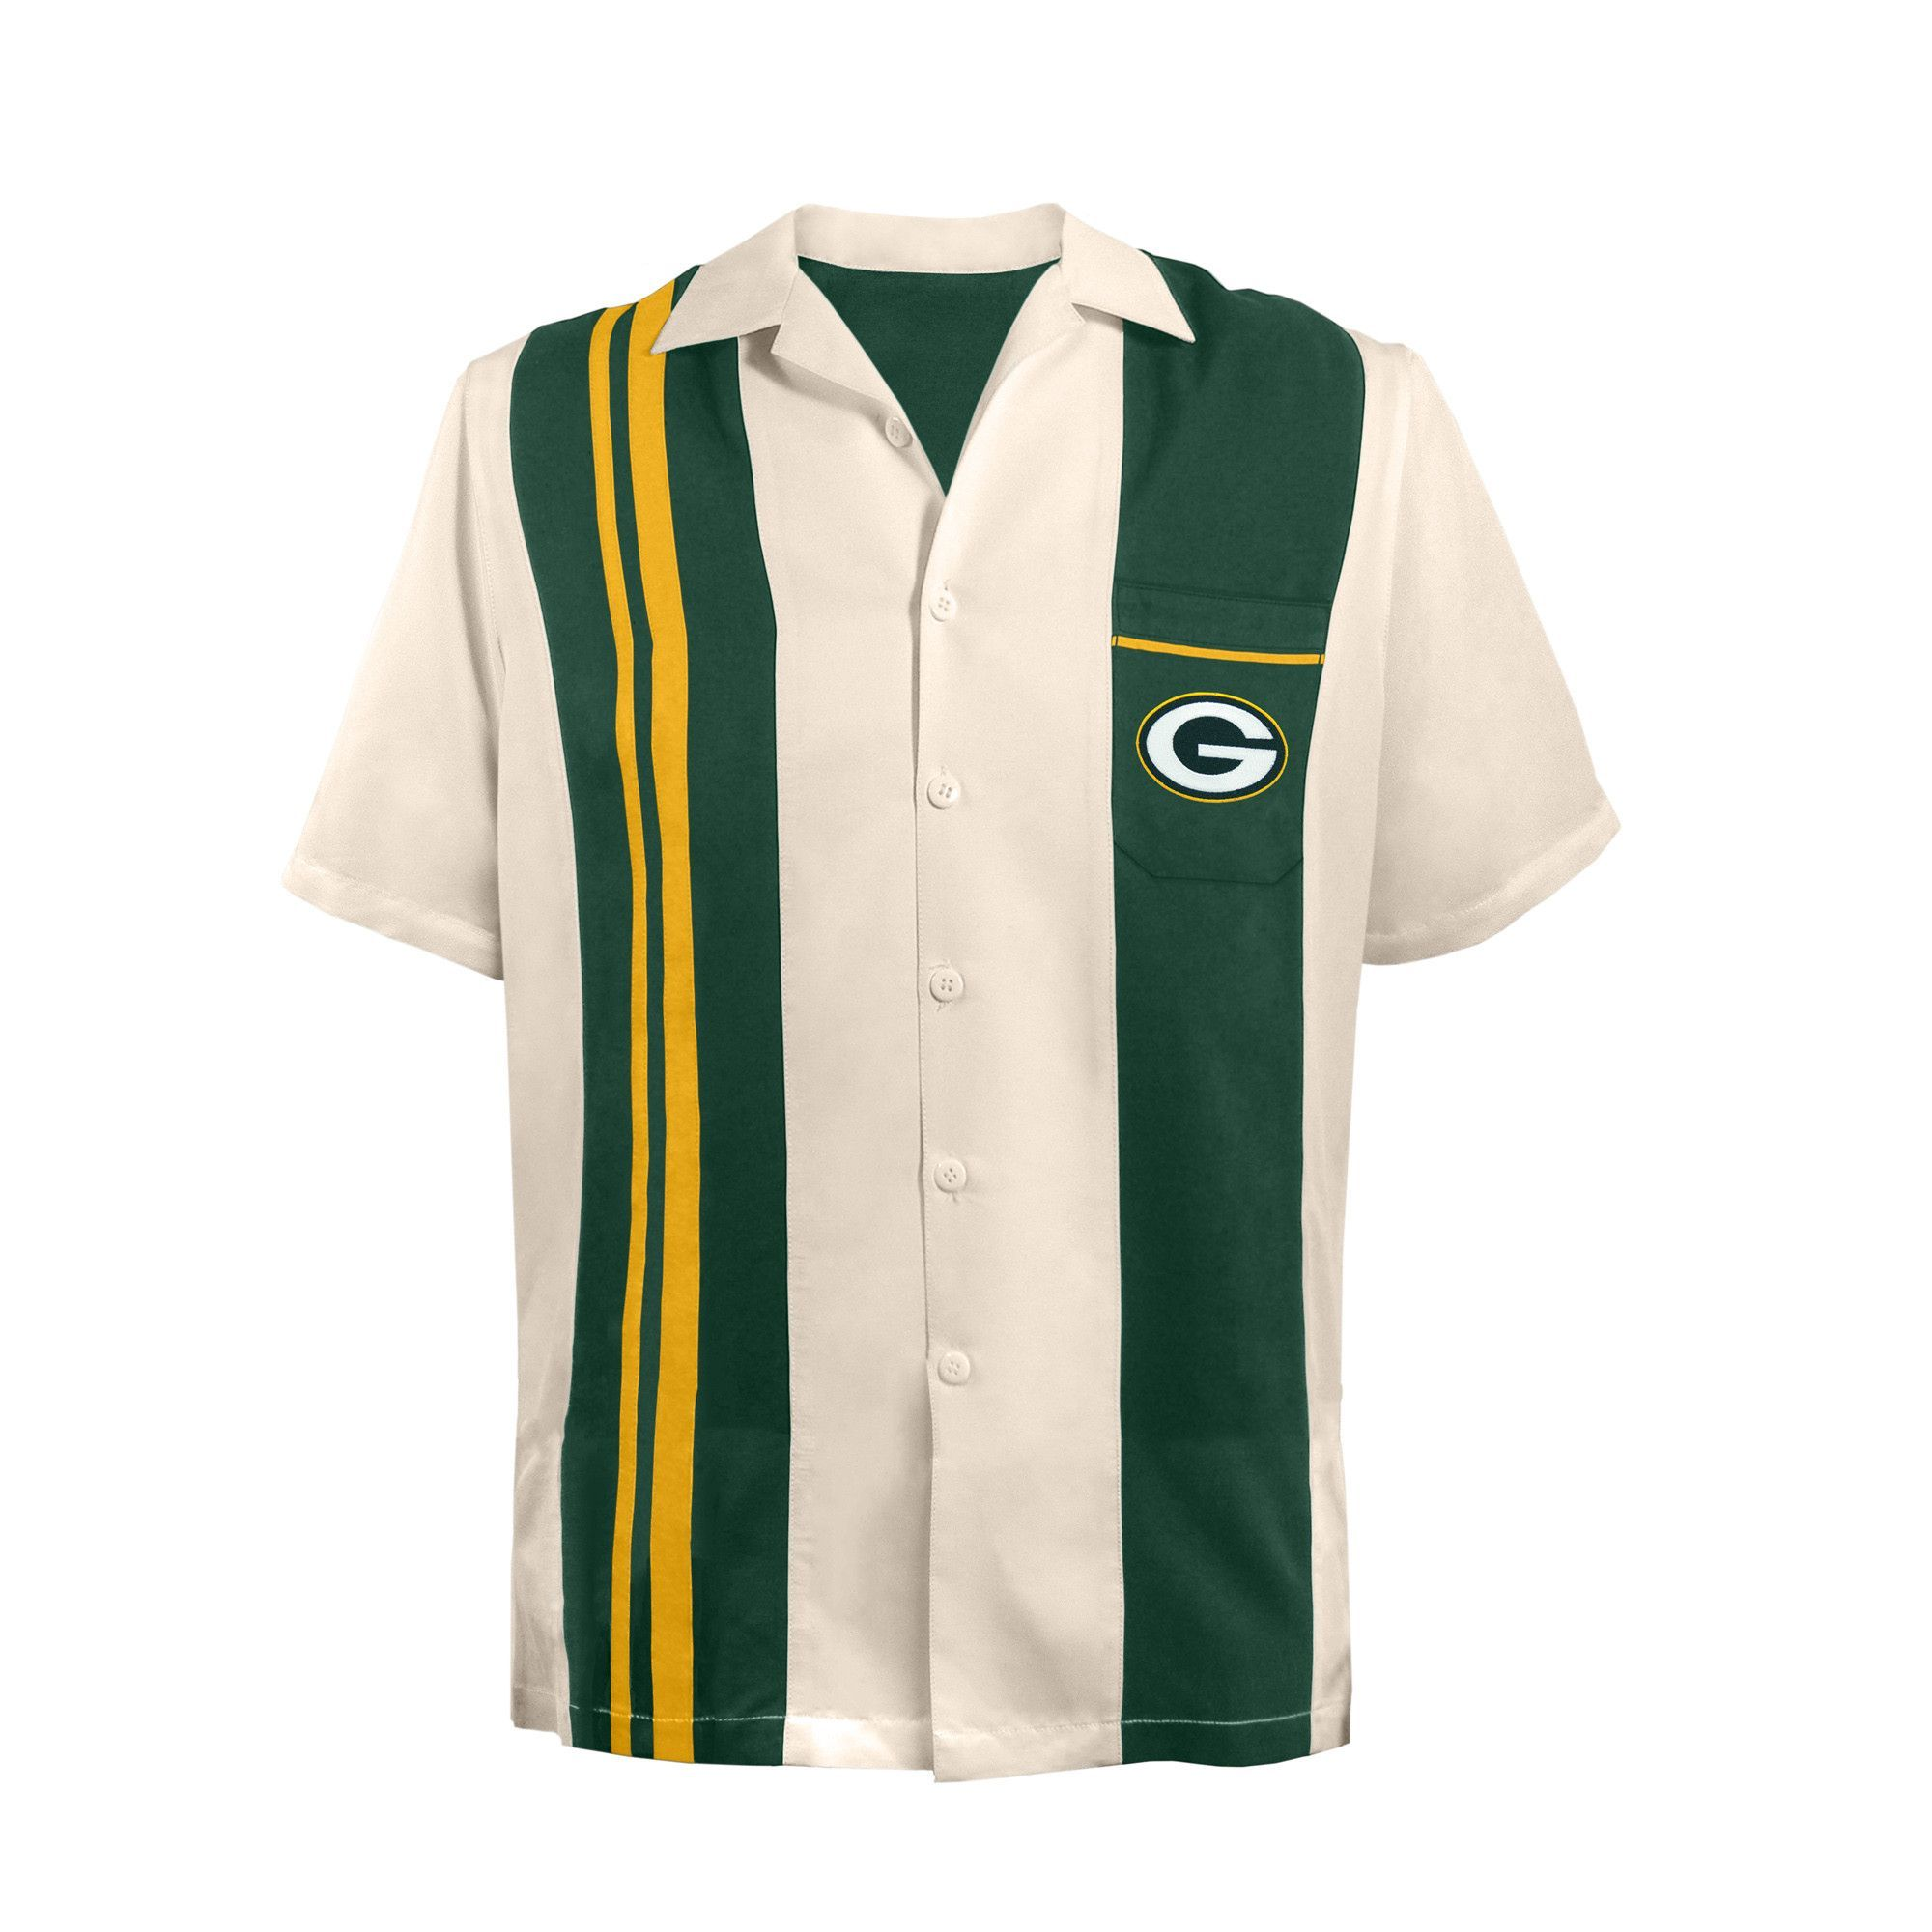 Officially licensed bowling shirt by Little Earth. These polyester shirts  have a loose fit and run larger than traditional shirts. Quality embroidery  with ...